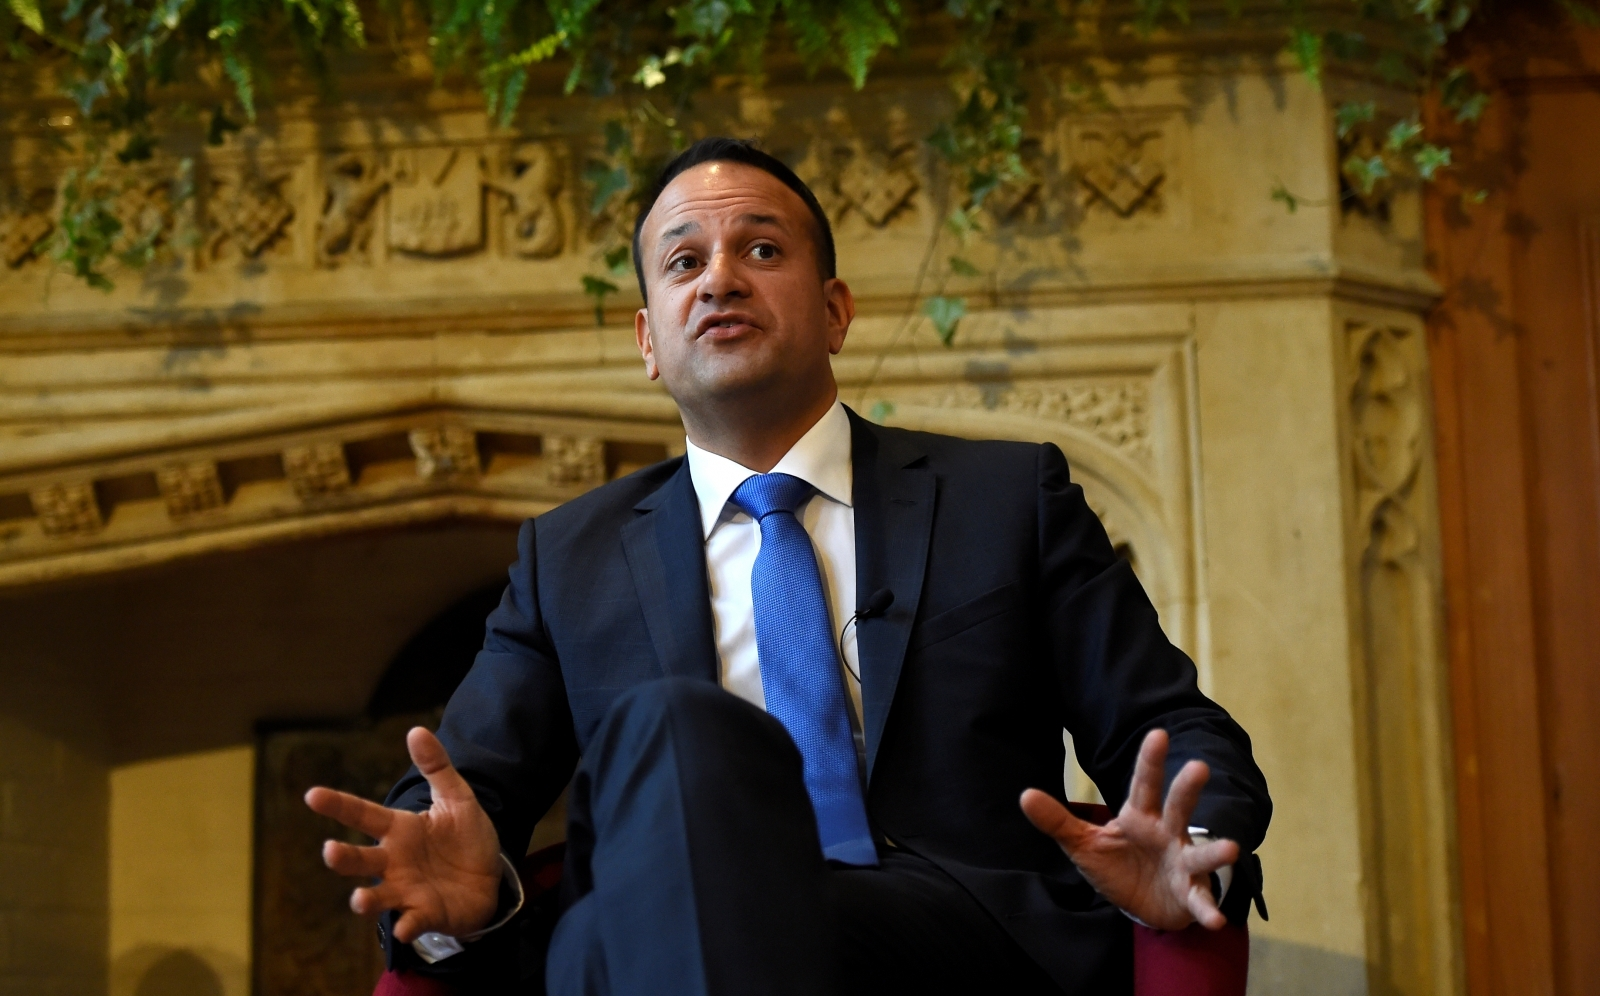 Irish Prime Minister Leo Varadkar speaks at Queen's University in Belfast